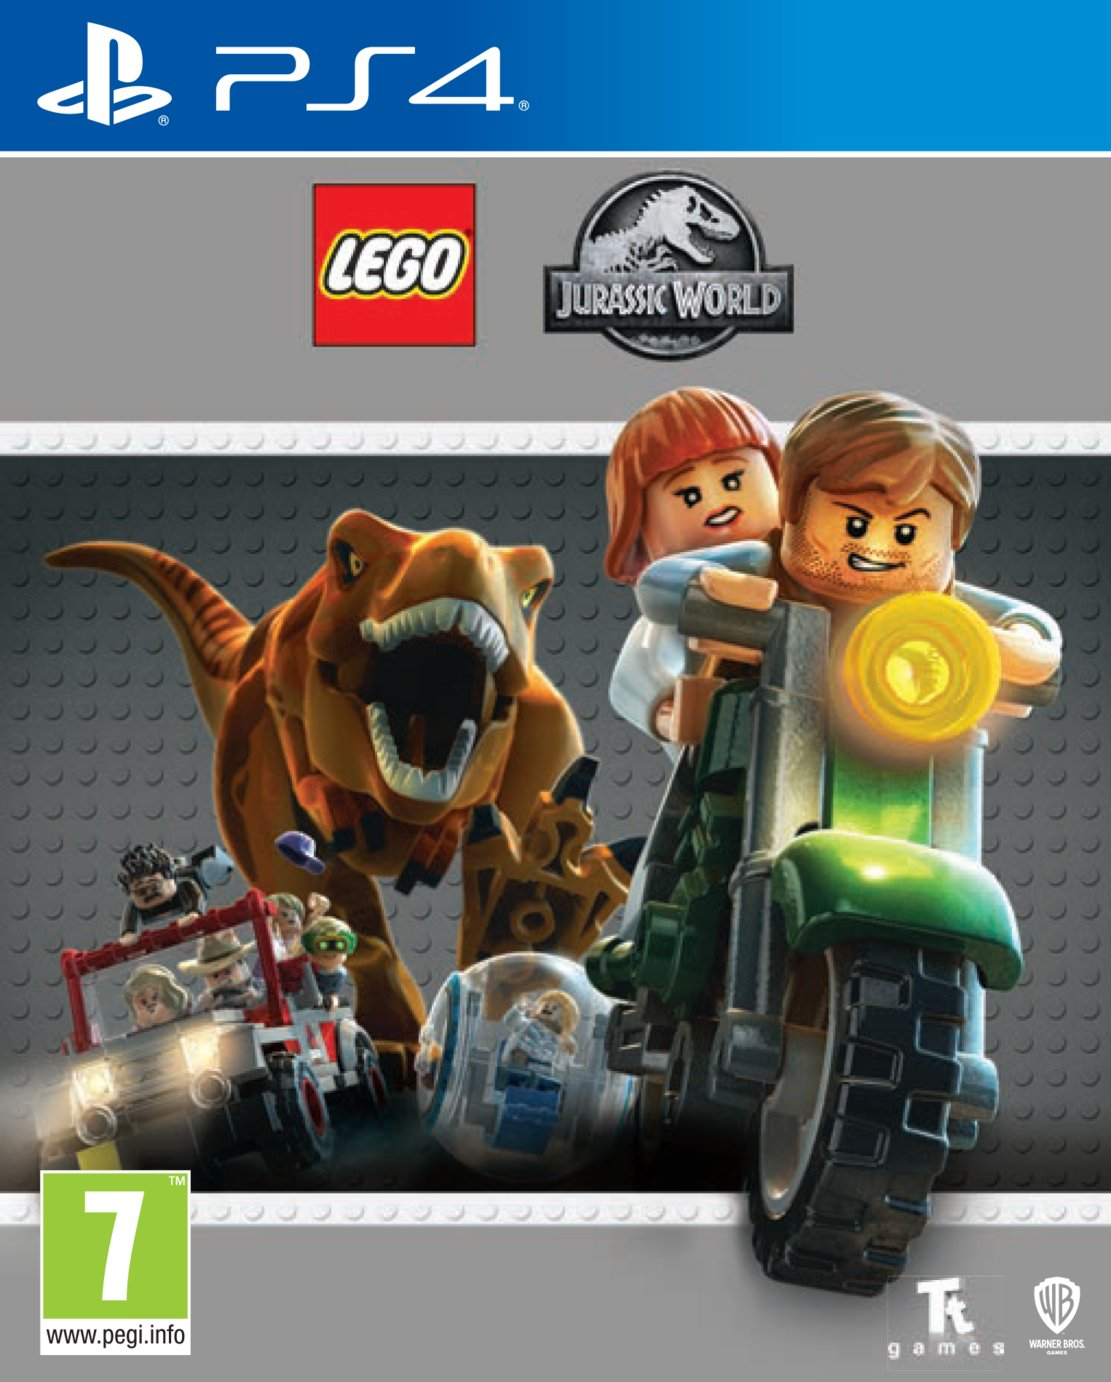 LEGO - Jurassic World - PS4 Game from LEGO